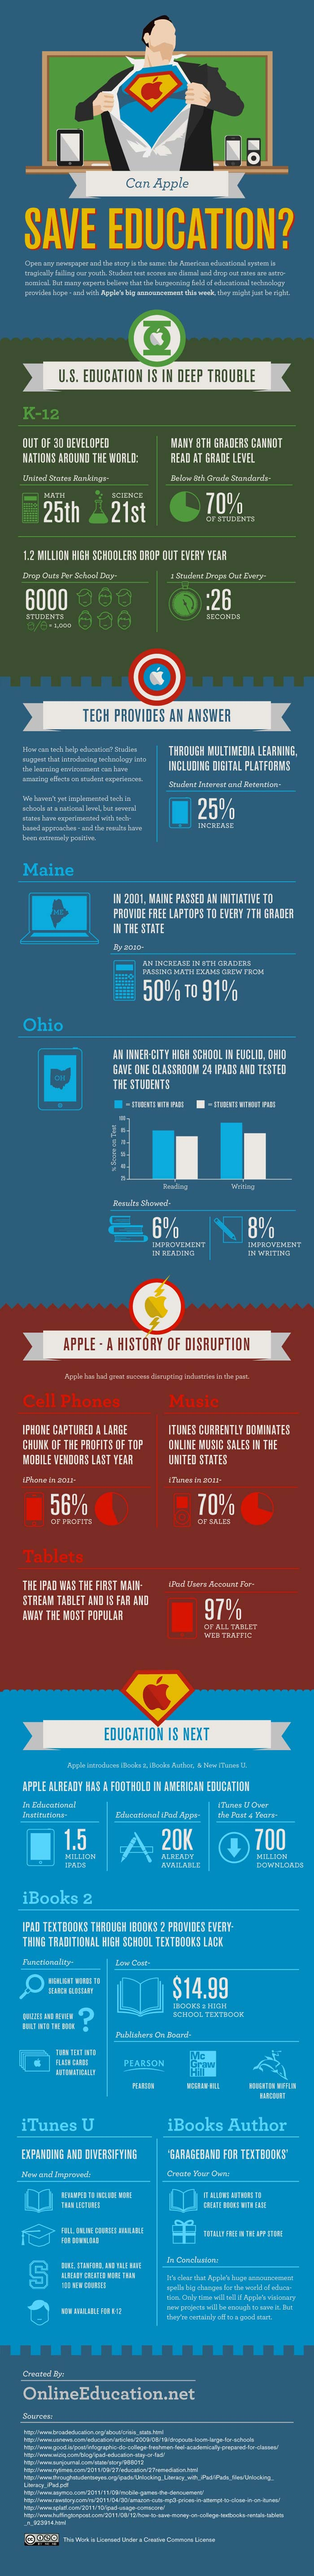 can-apple-save-education-2